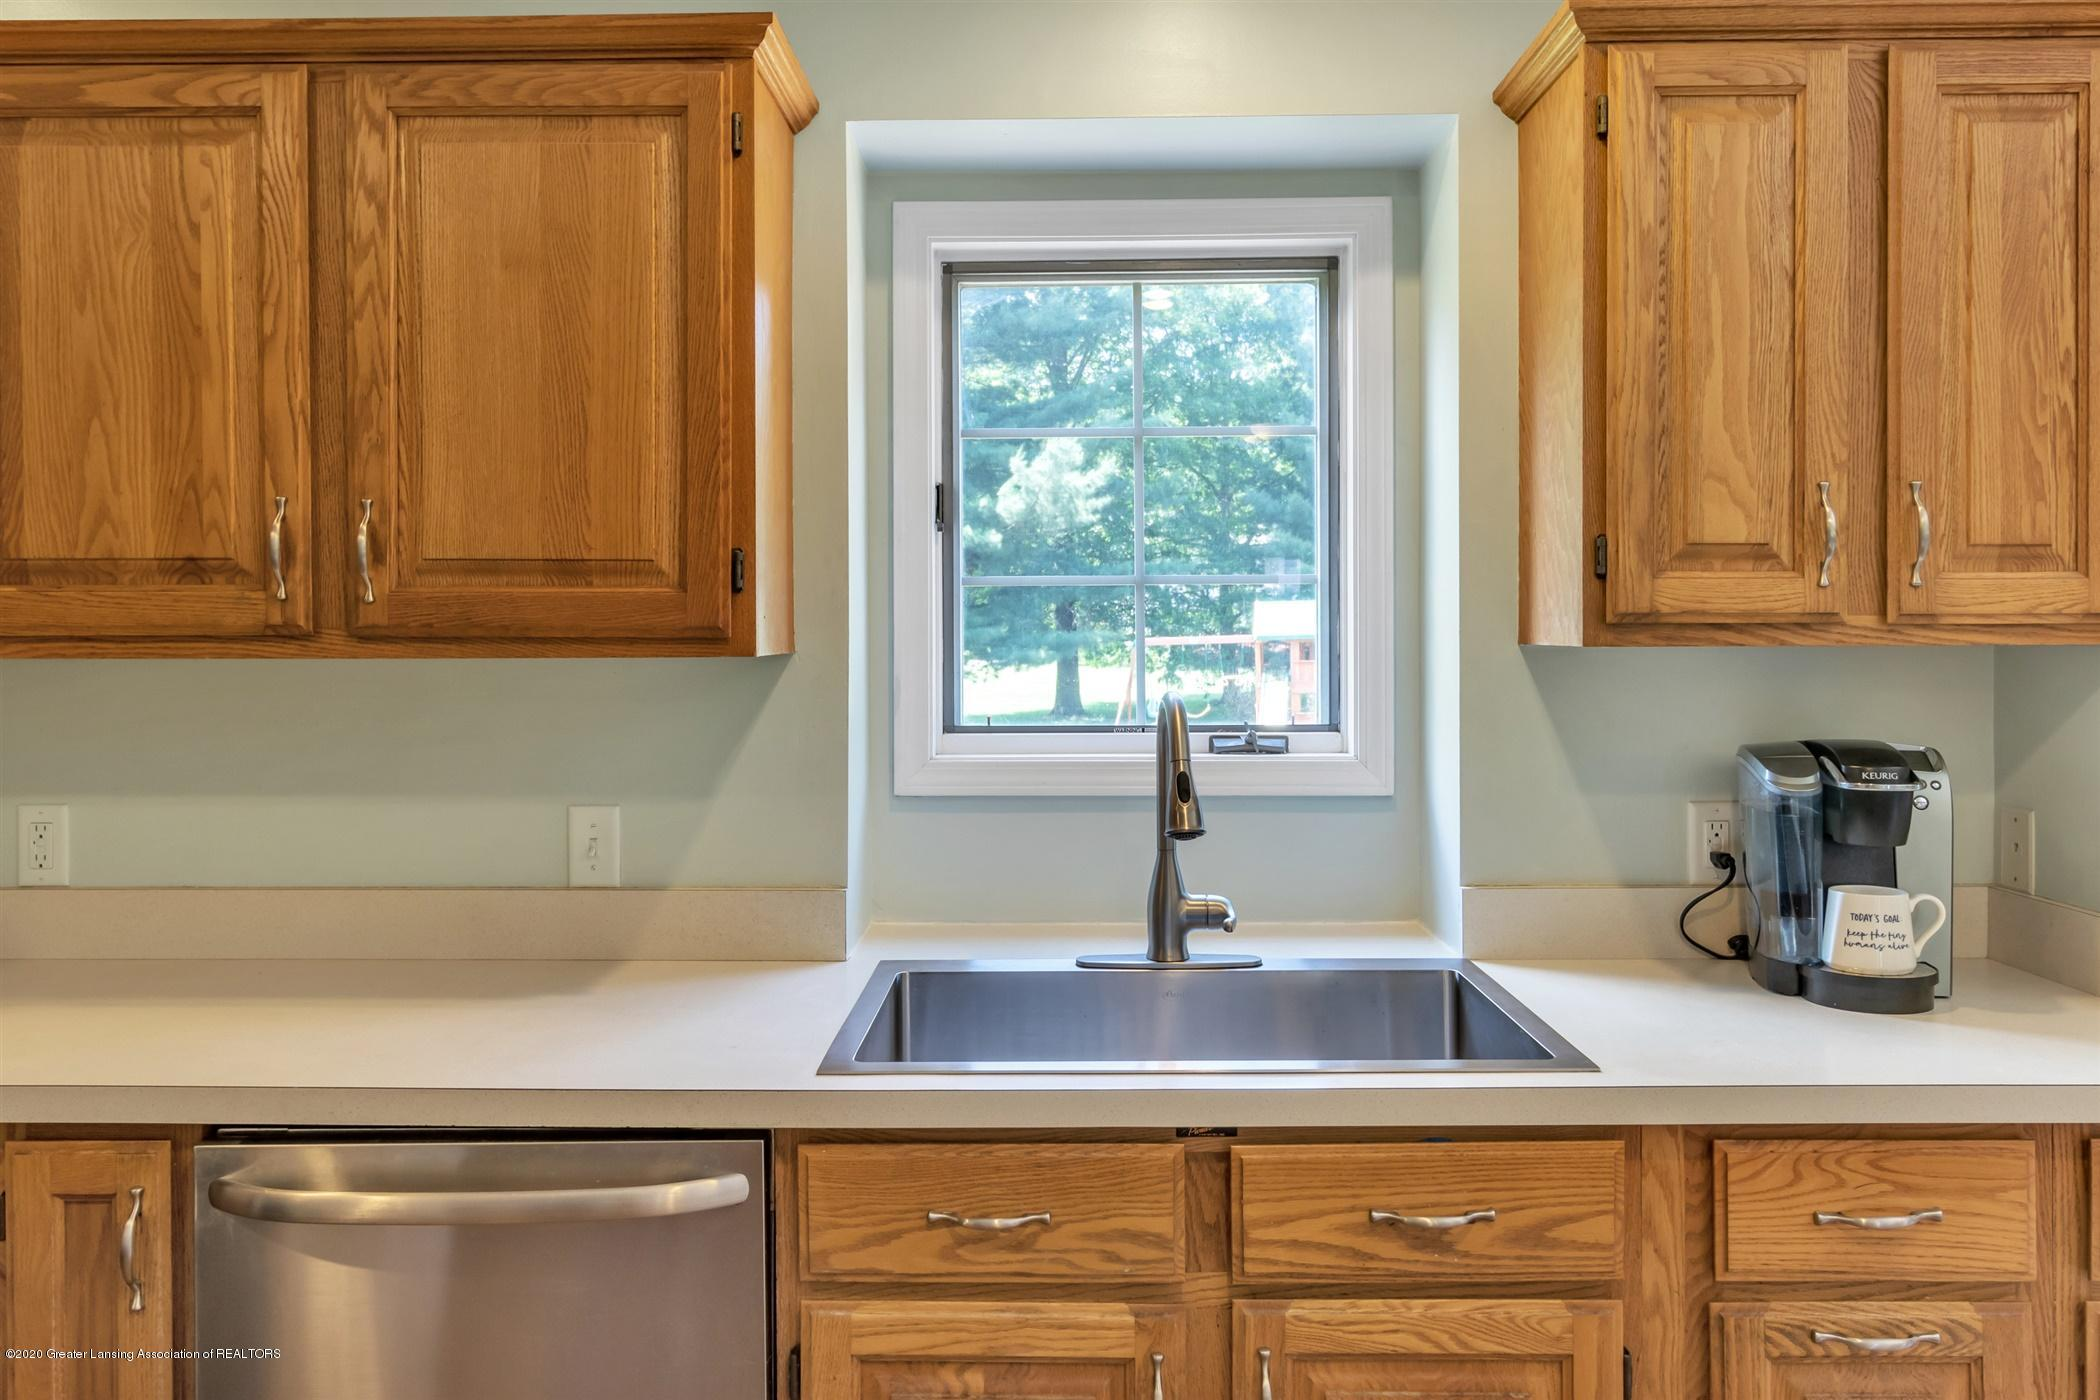 2945 Whistlewood Way - 16-2945Whistlewood-WindowStill-Real - 16